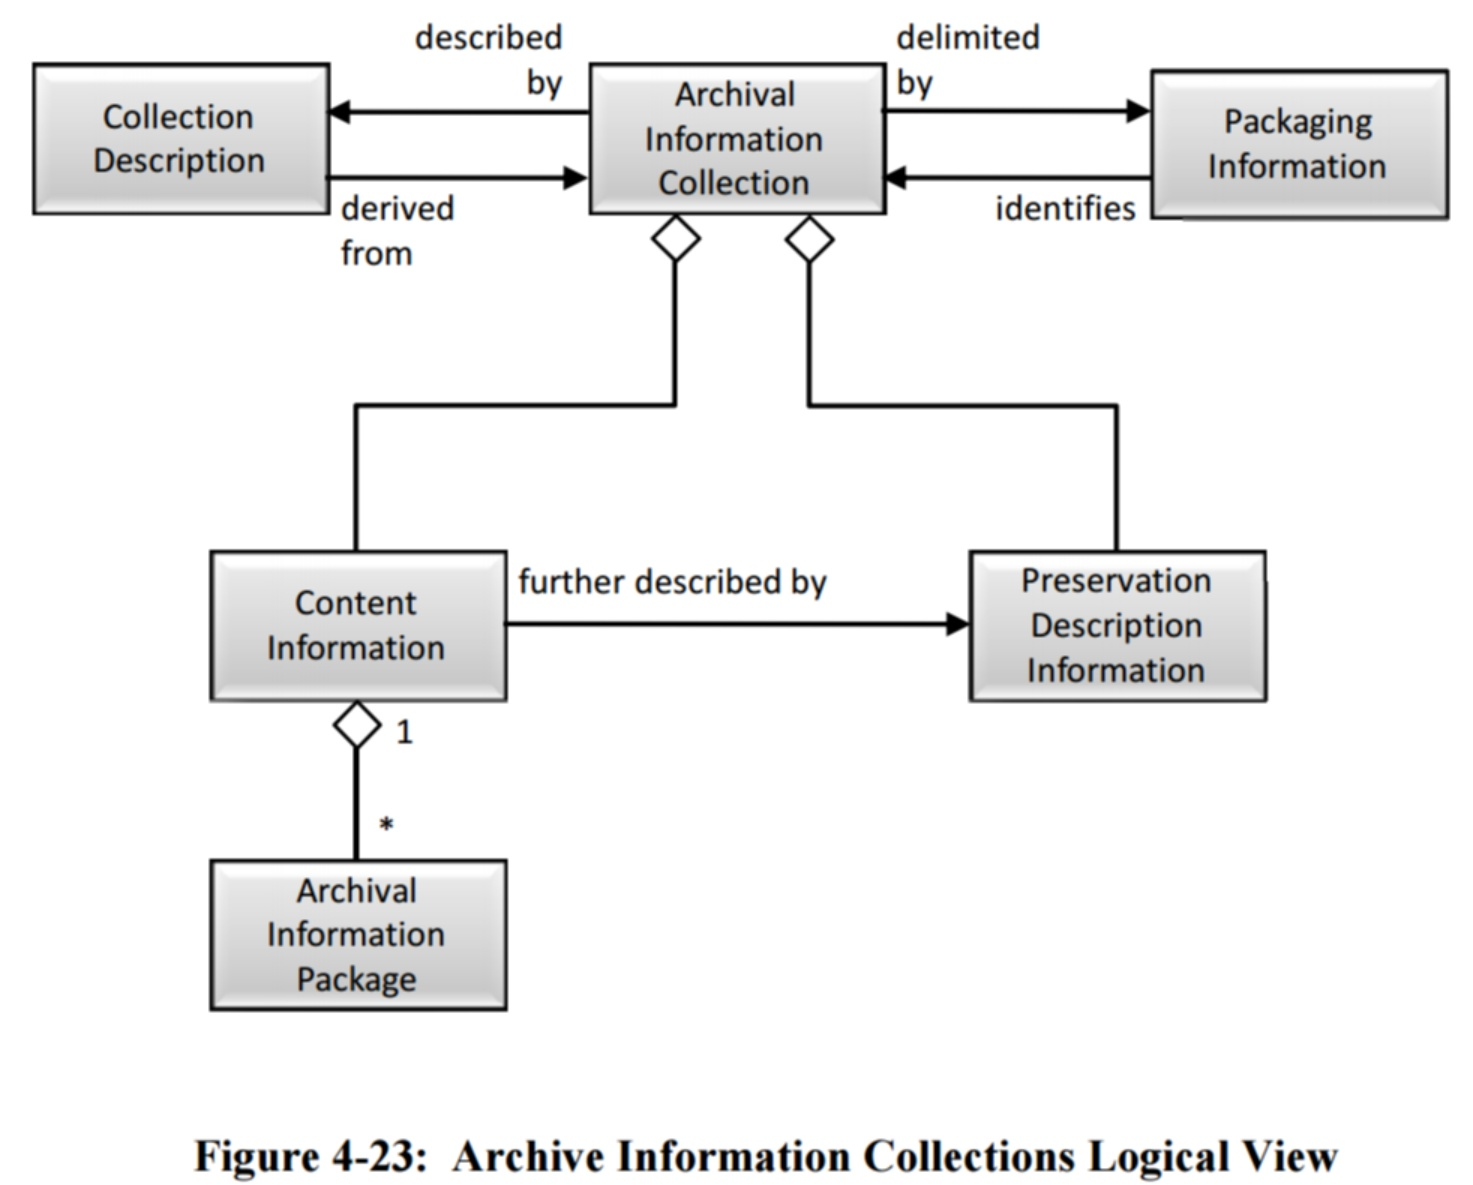 Filefigure 4 23 archive information collections logical view filefigure 4 23 archive information collections logical view 650x0m2g pooptronica